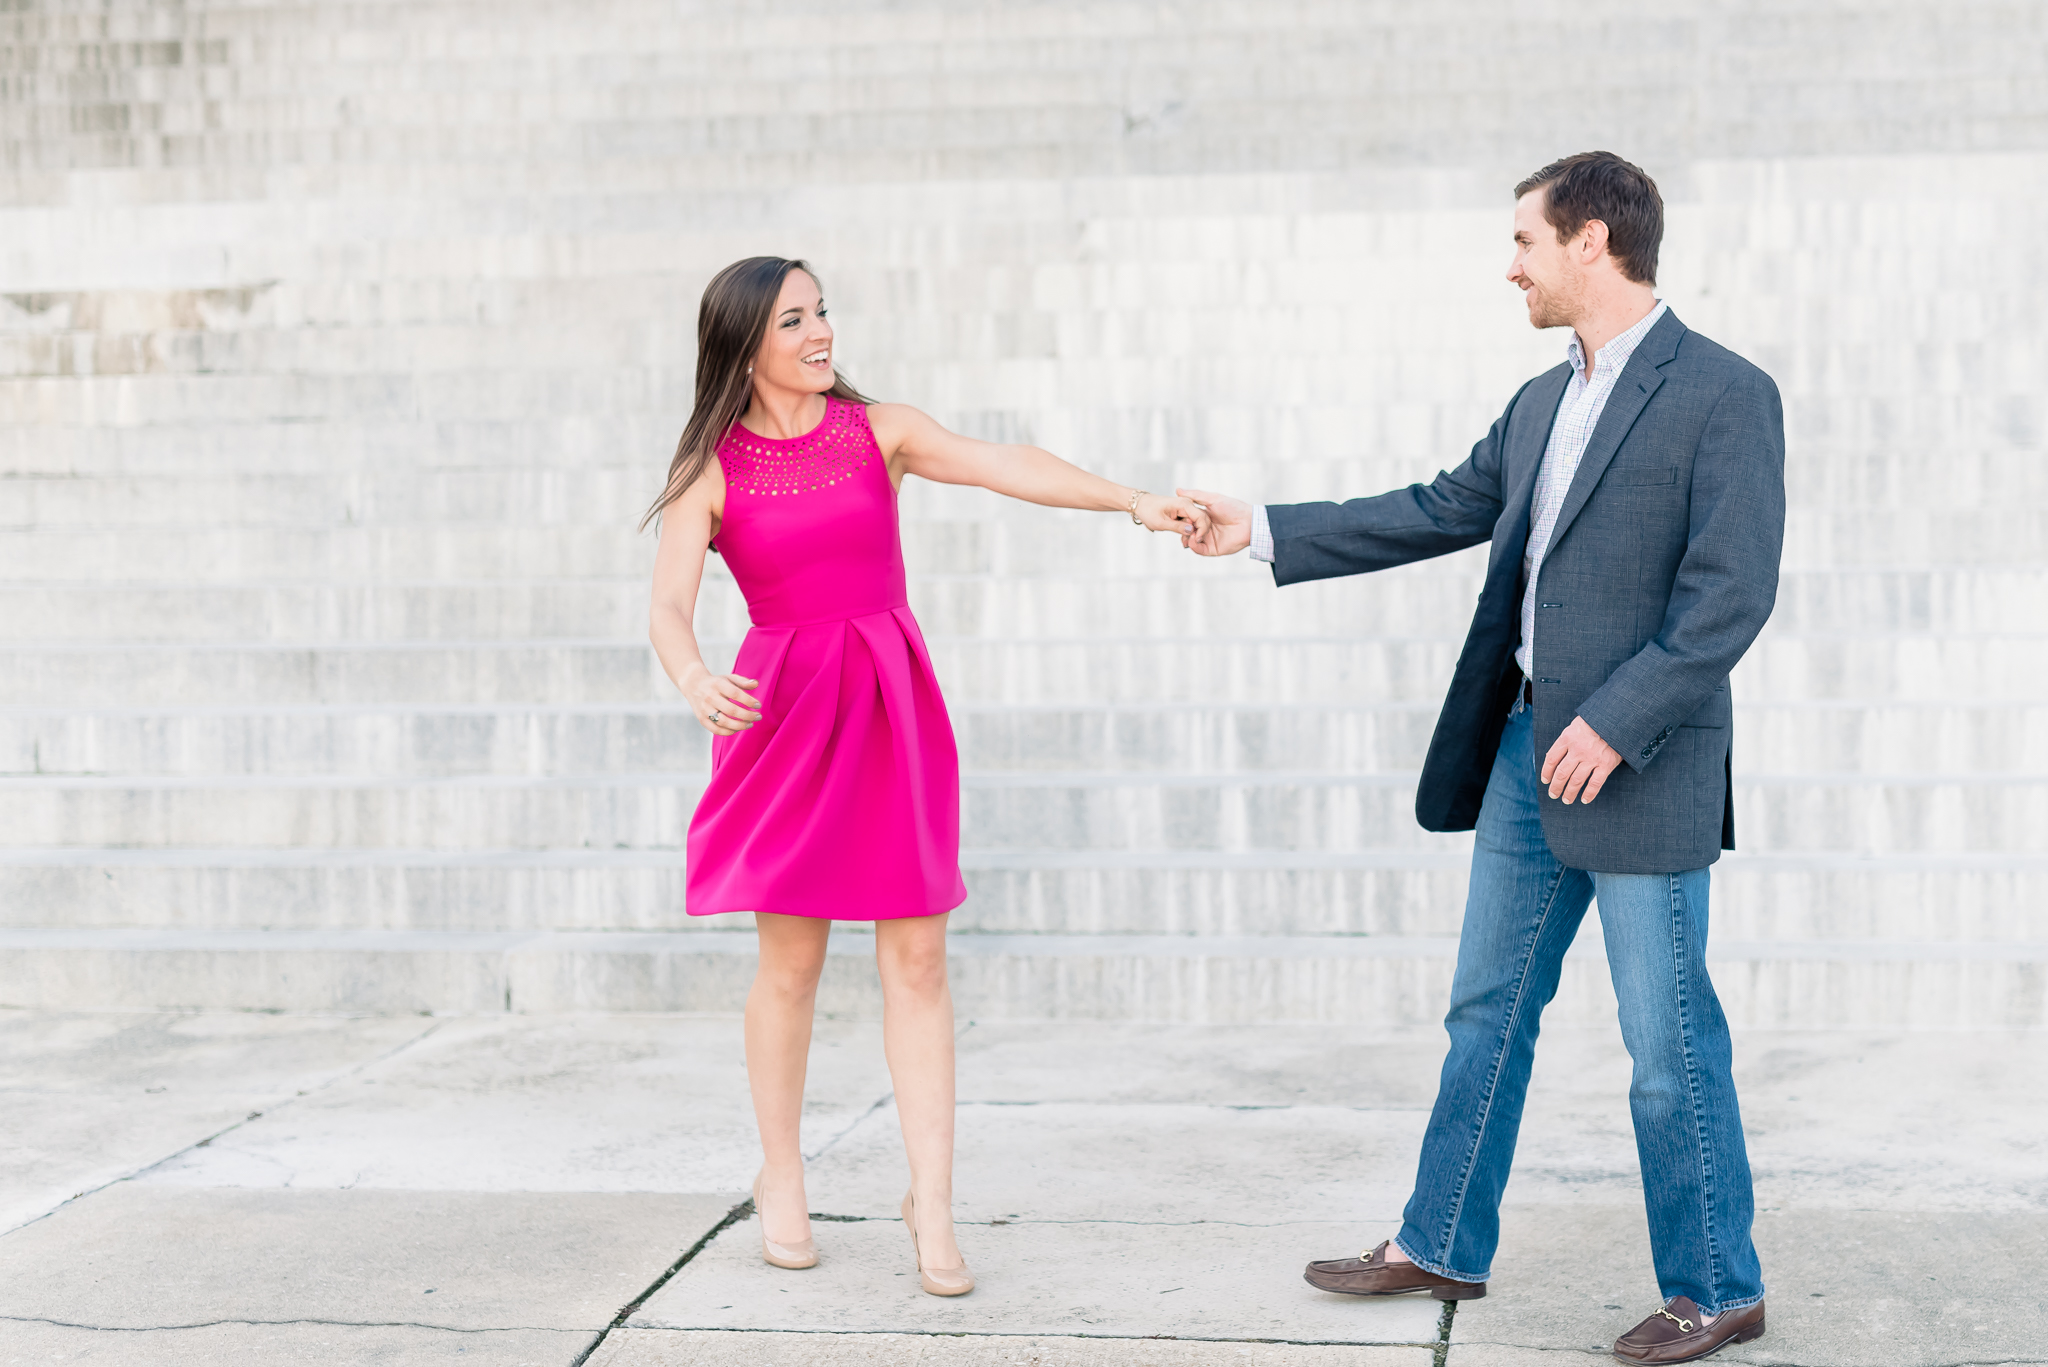 Natural, fun, silly downtown Engagement Photography, Pink fuchsia dress | Charleston SC wedding Photographer